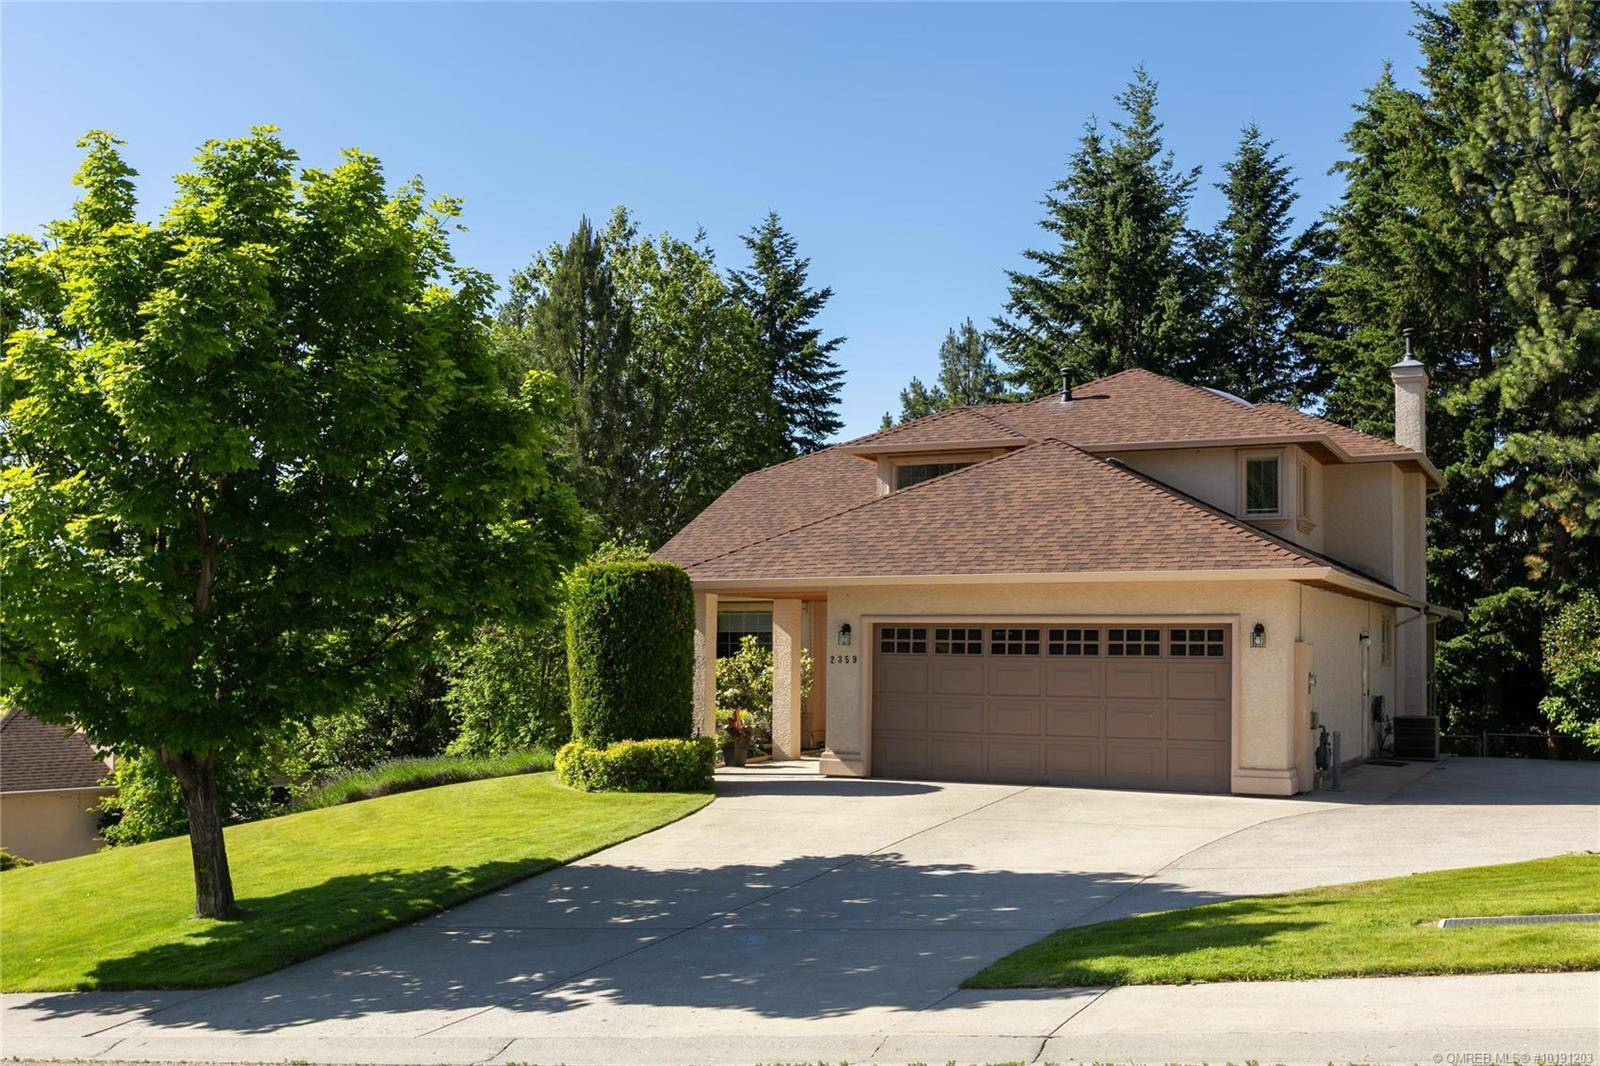 House for sale at 2359 Shannon Woods Dr West Kelowna British Columbia - MLS: 10191203